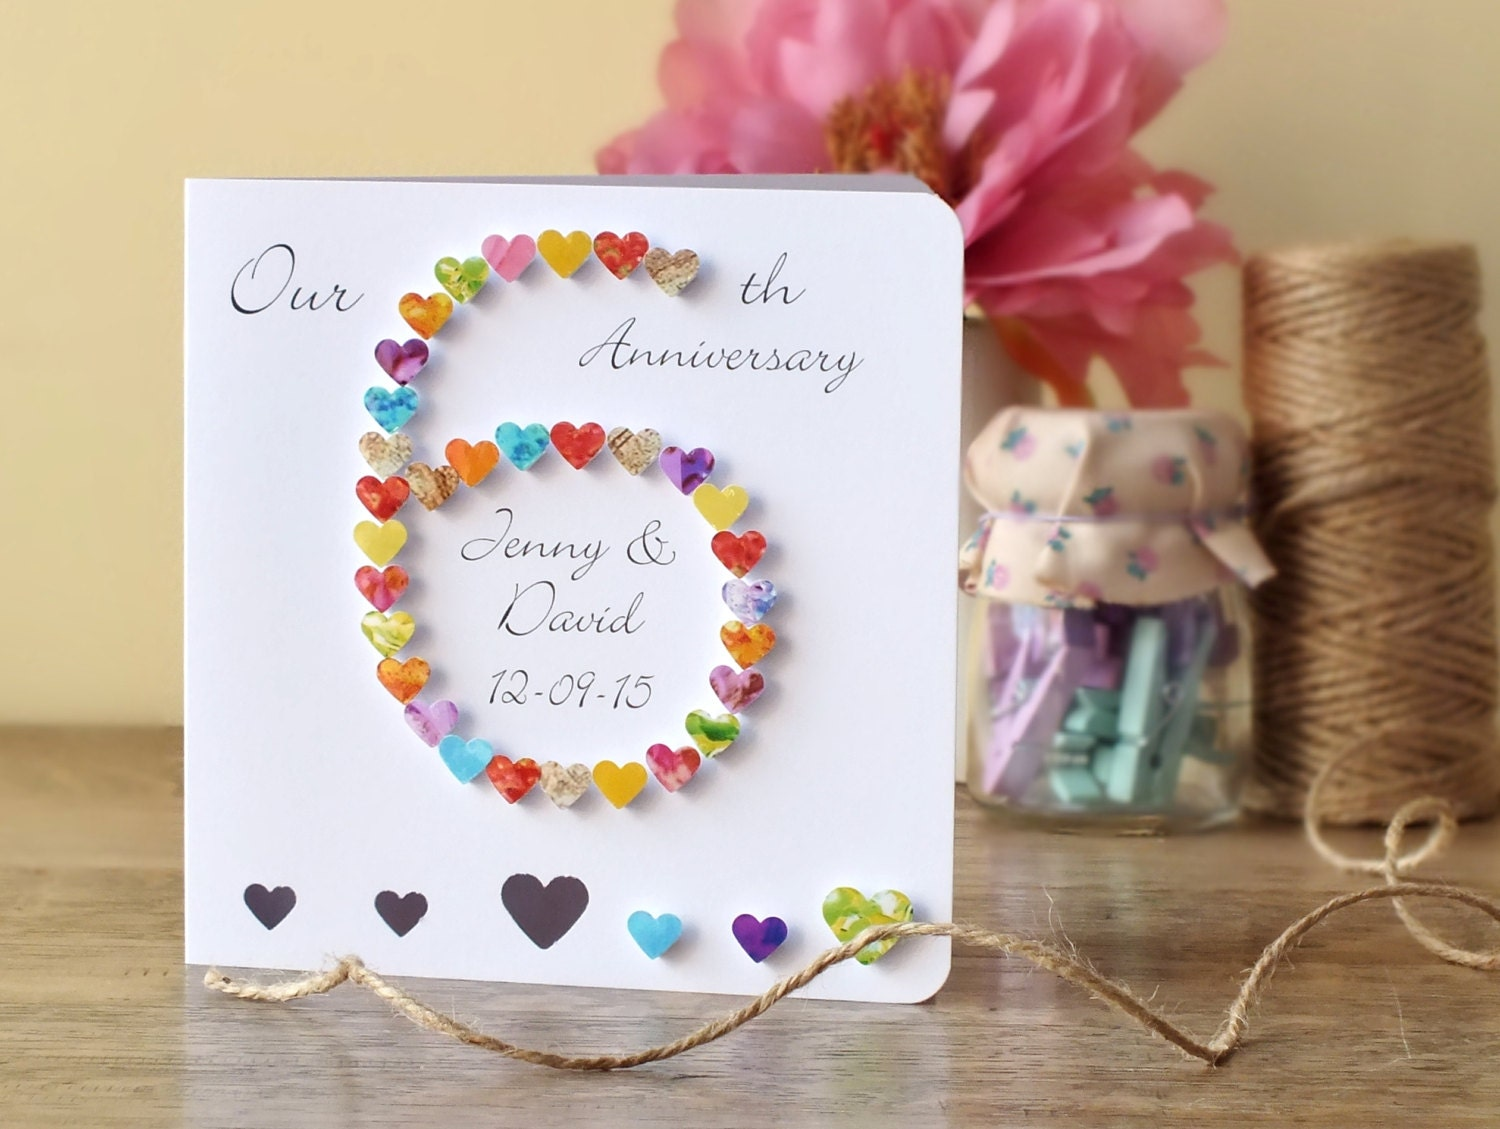 6th Wedding Anniversary Gift Ideas For Him Iron Anniversary Couple